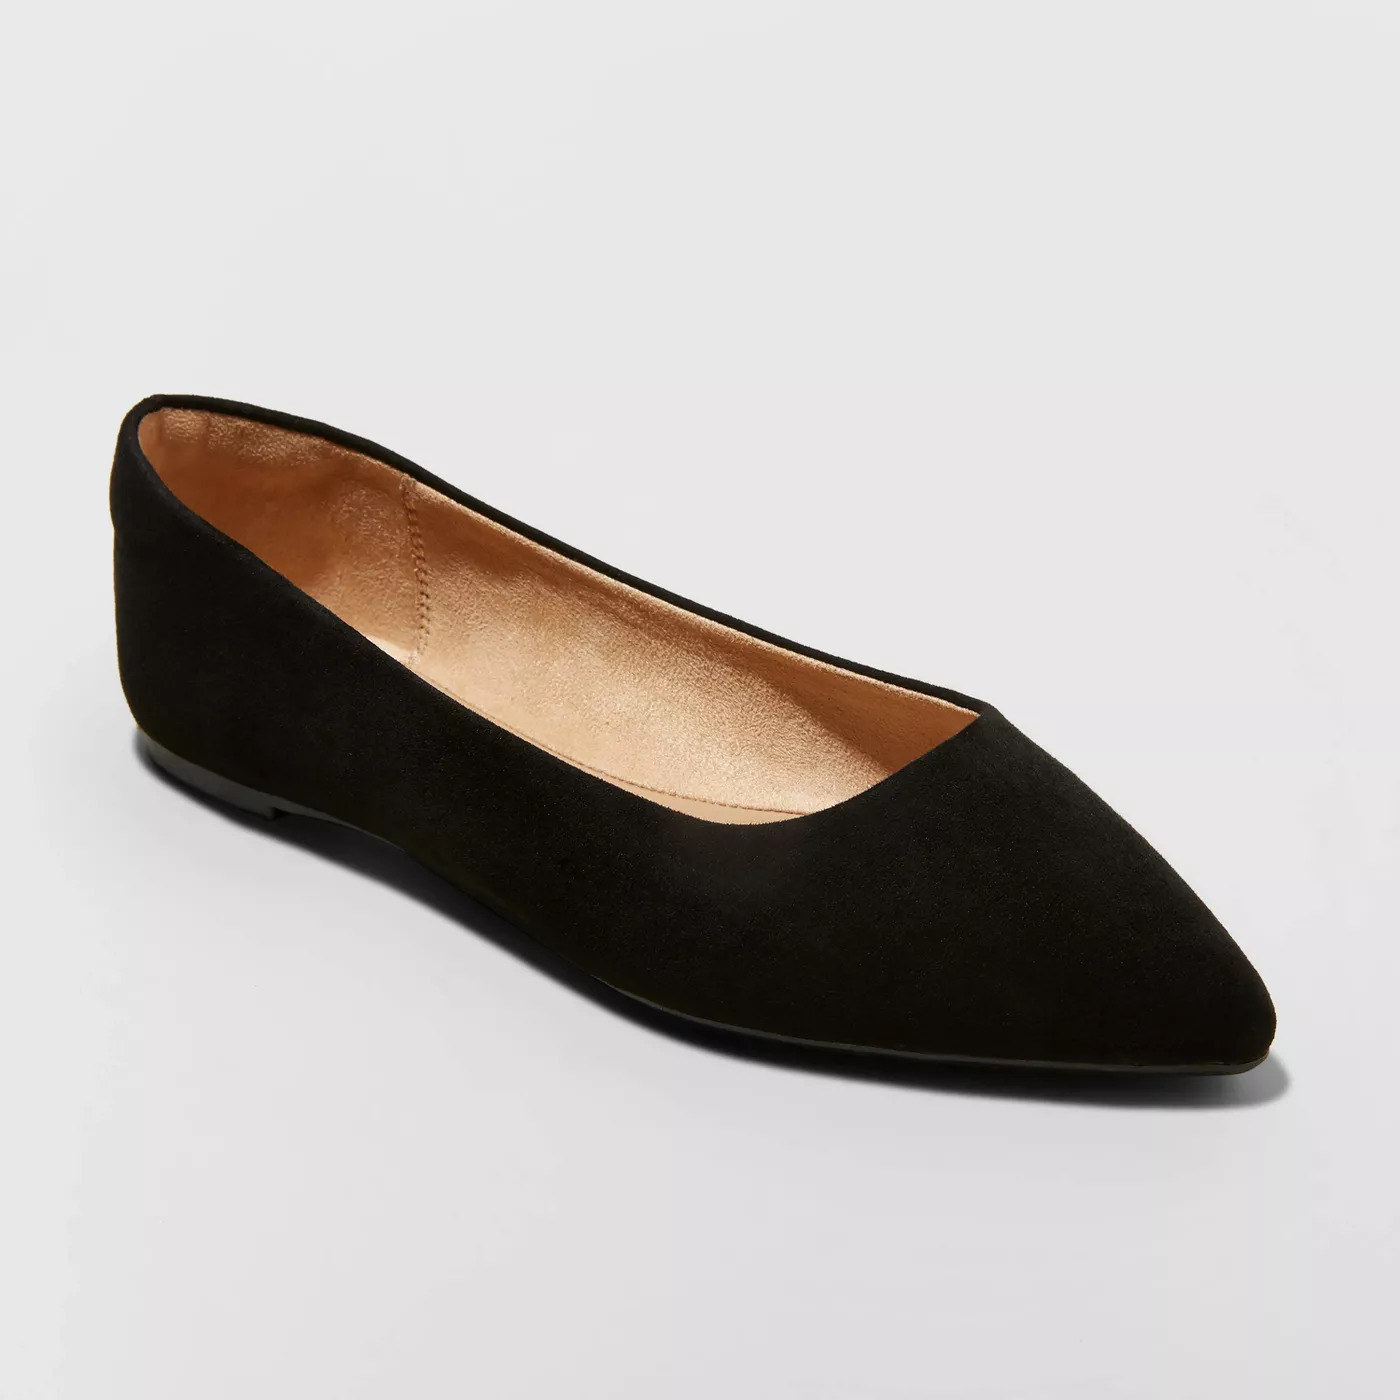 A single black flat with a pointed toe